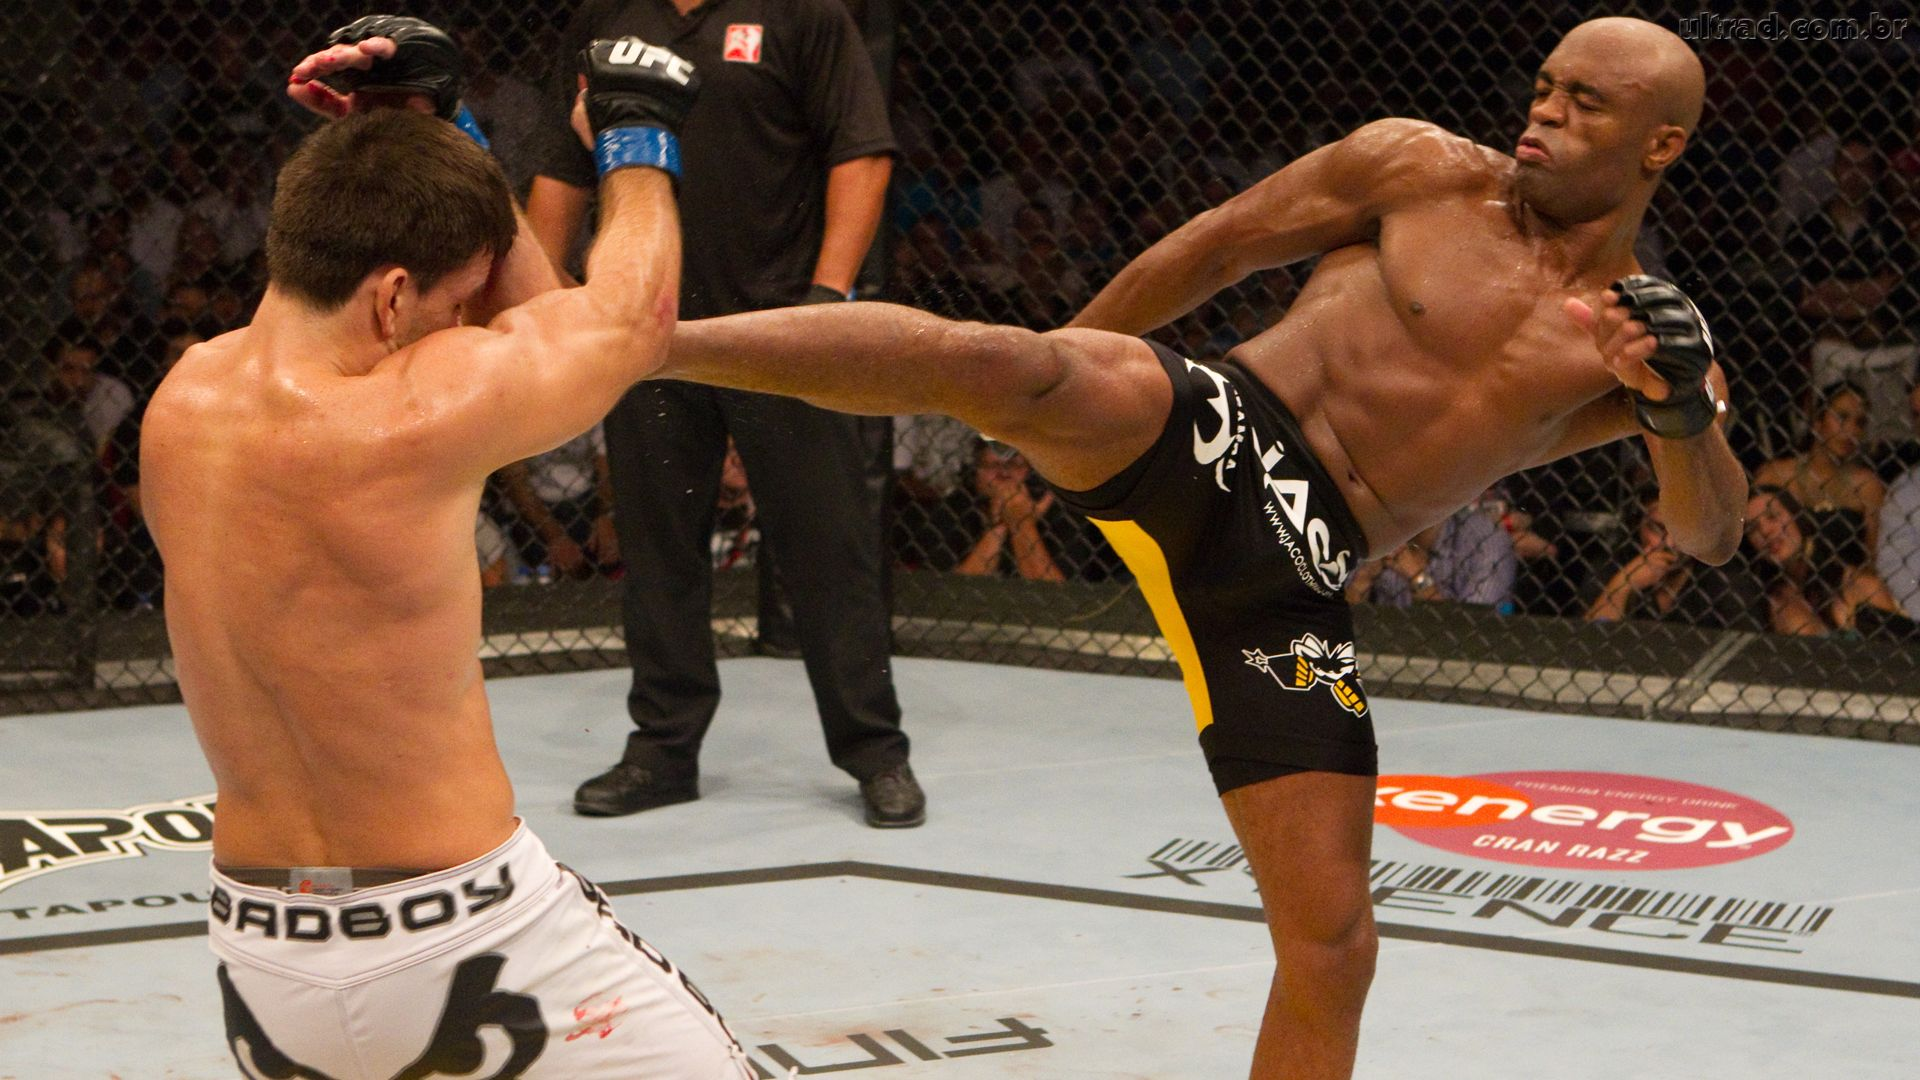 Anderson Silva Wallpaper Download 2014 1920x1080